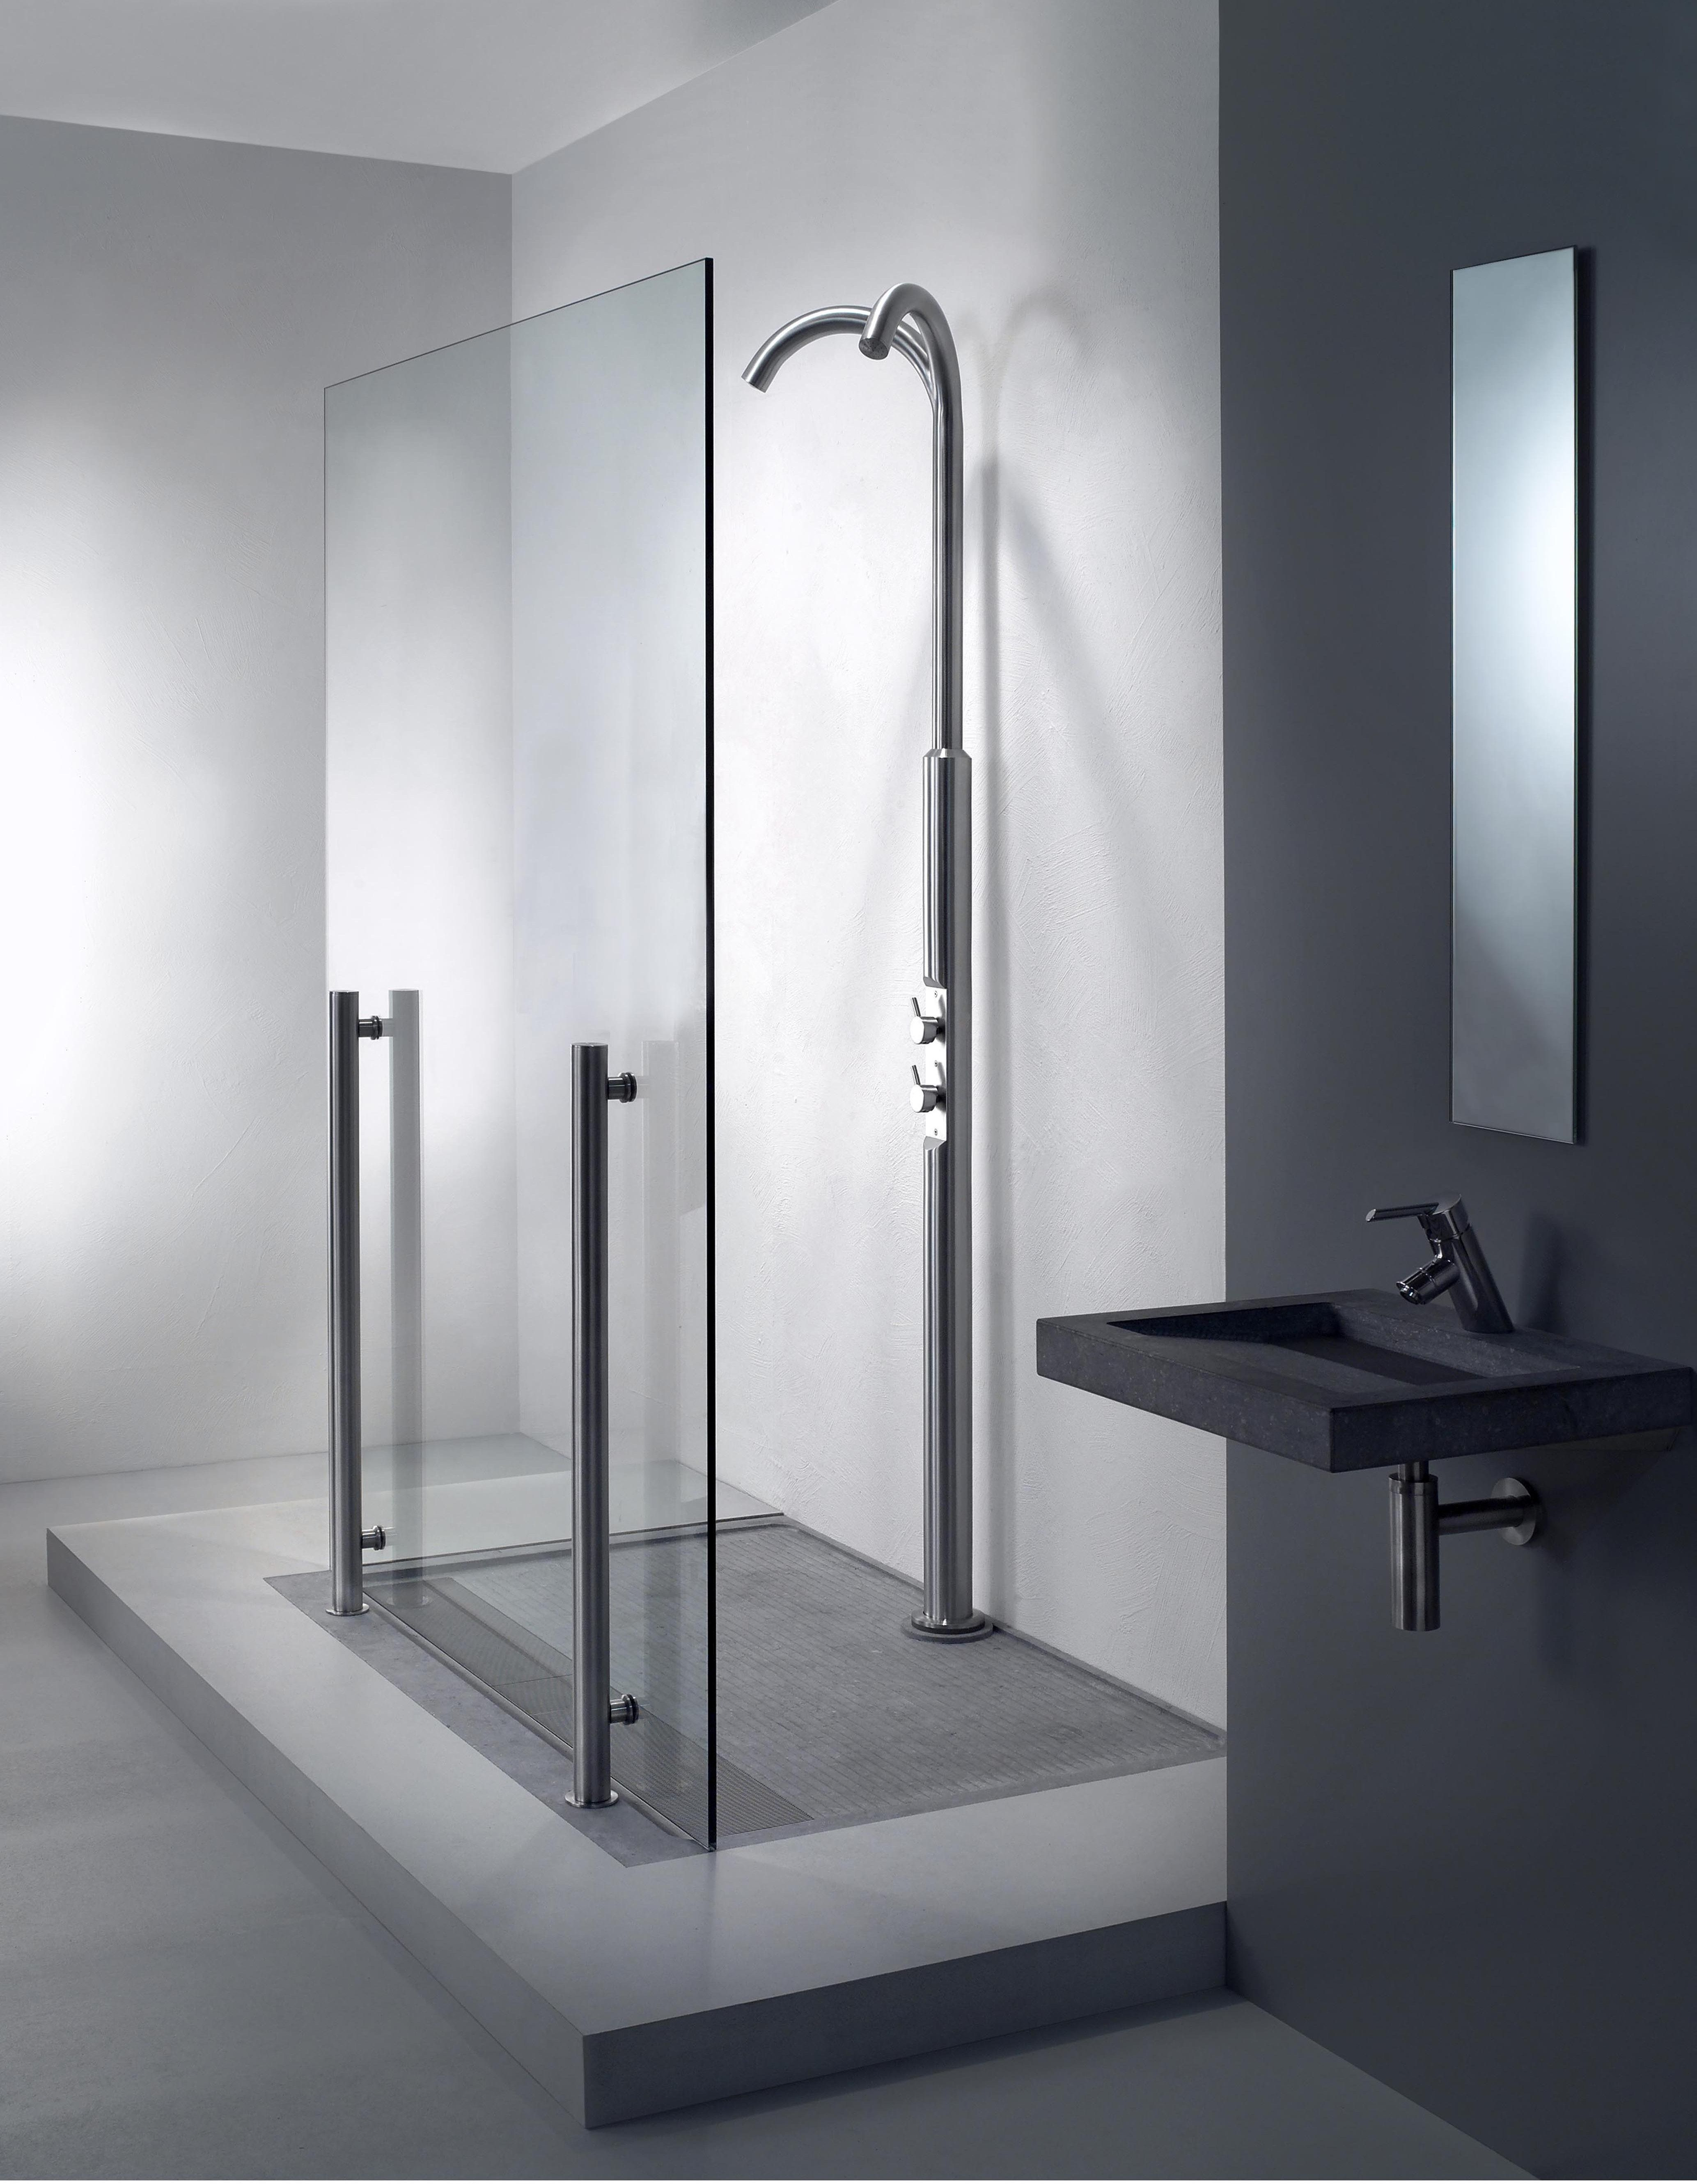 Freestanding shower enclosure Freedom-50 including Freedom-50 shower ...